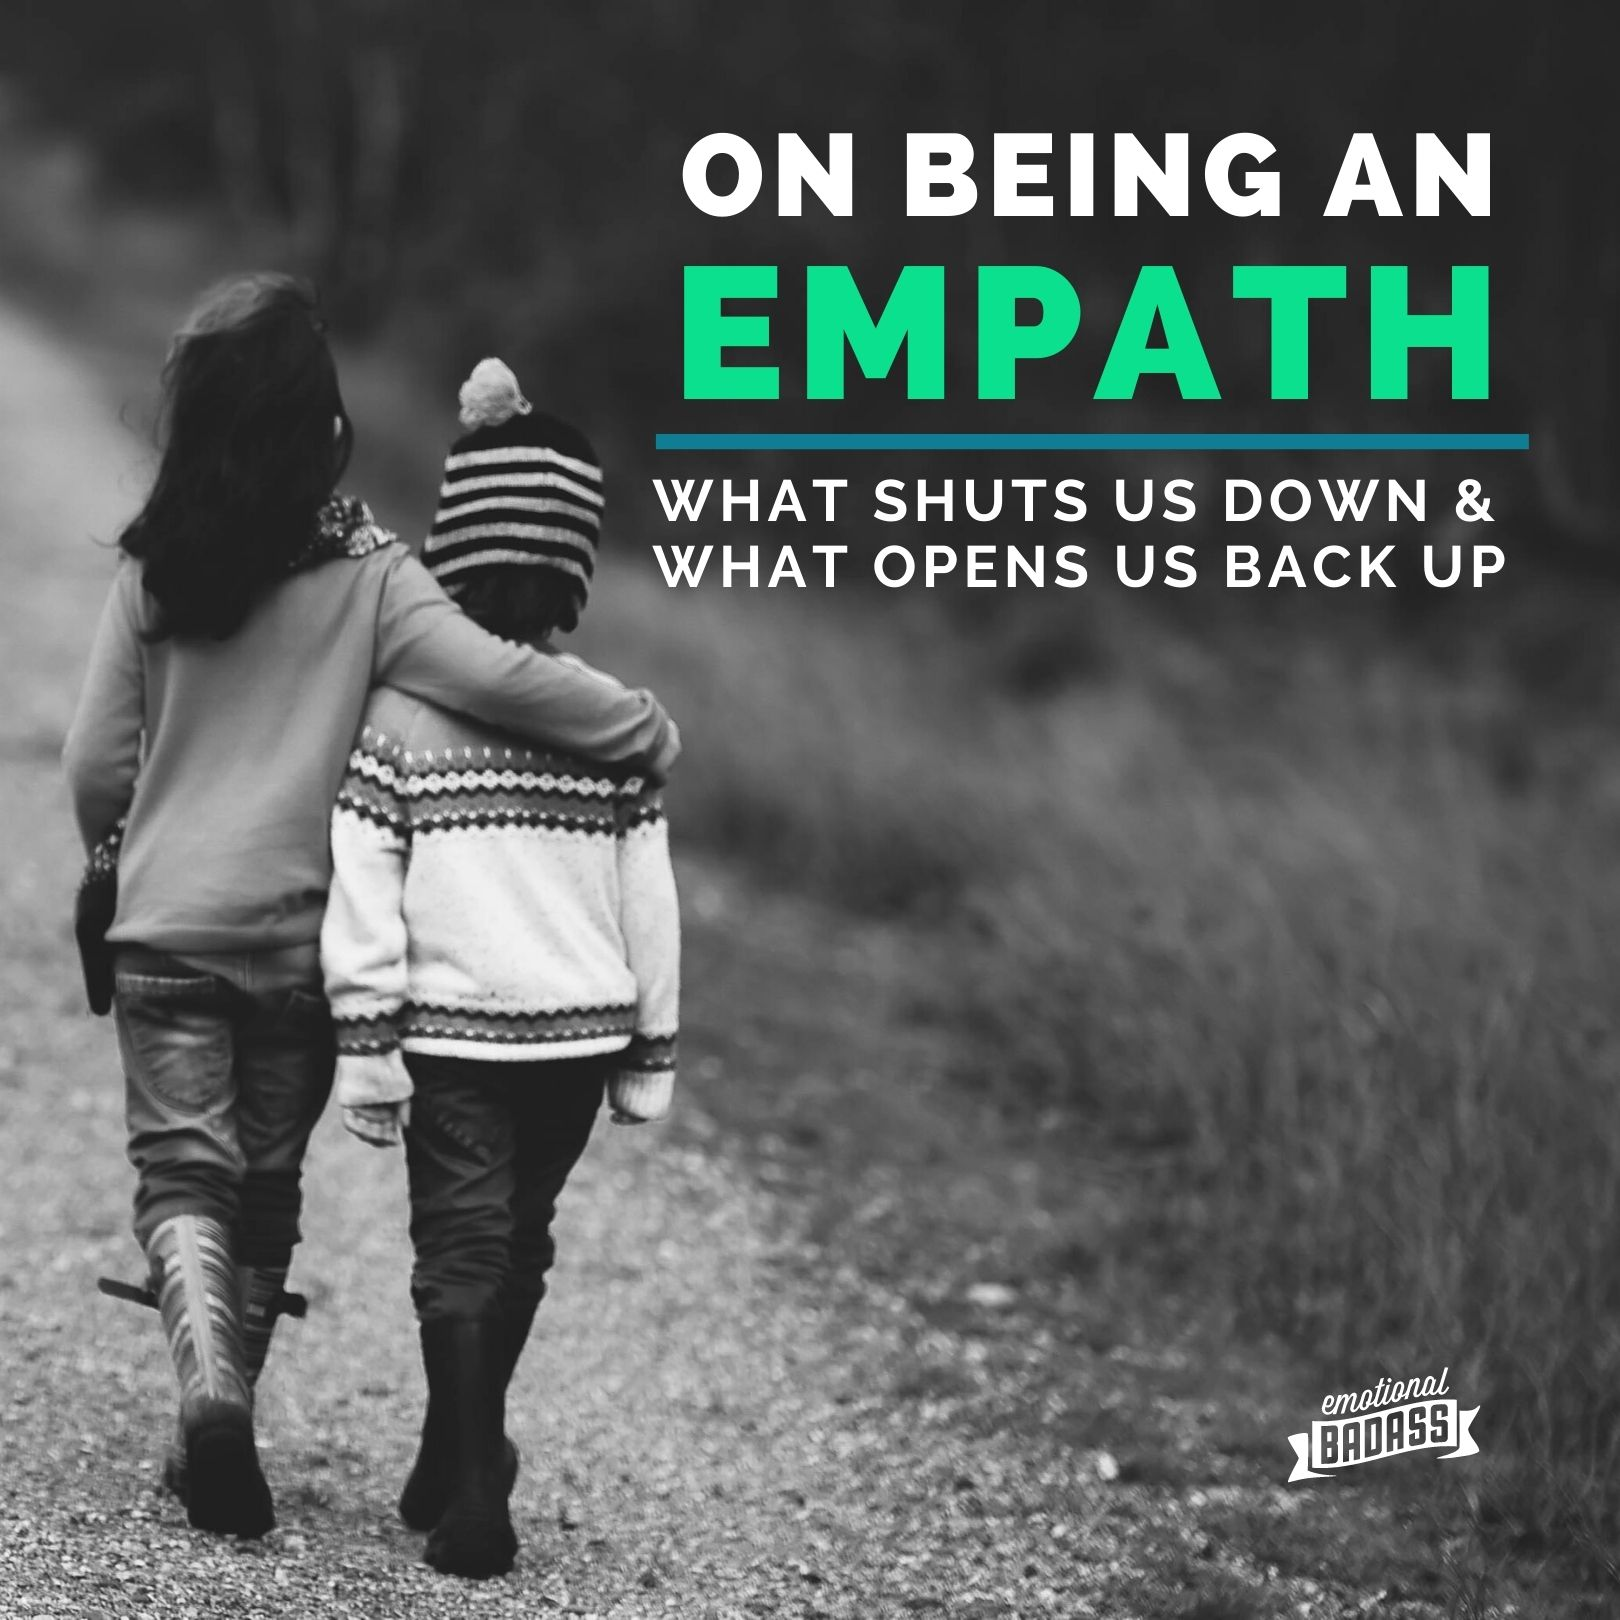 The artistry of being and Empath, finding permission and worth by stepping outside of comfort zones